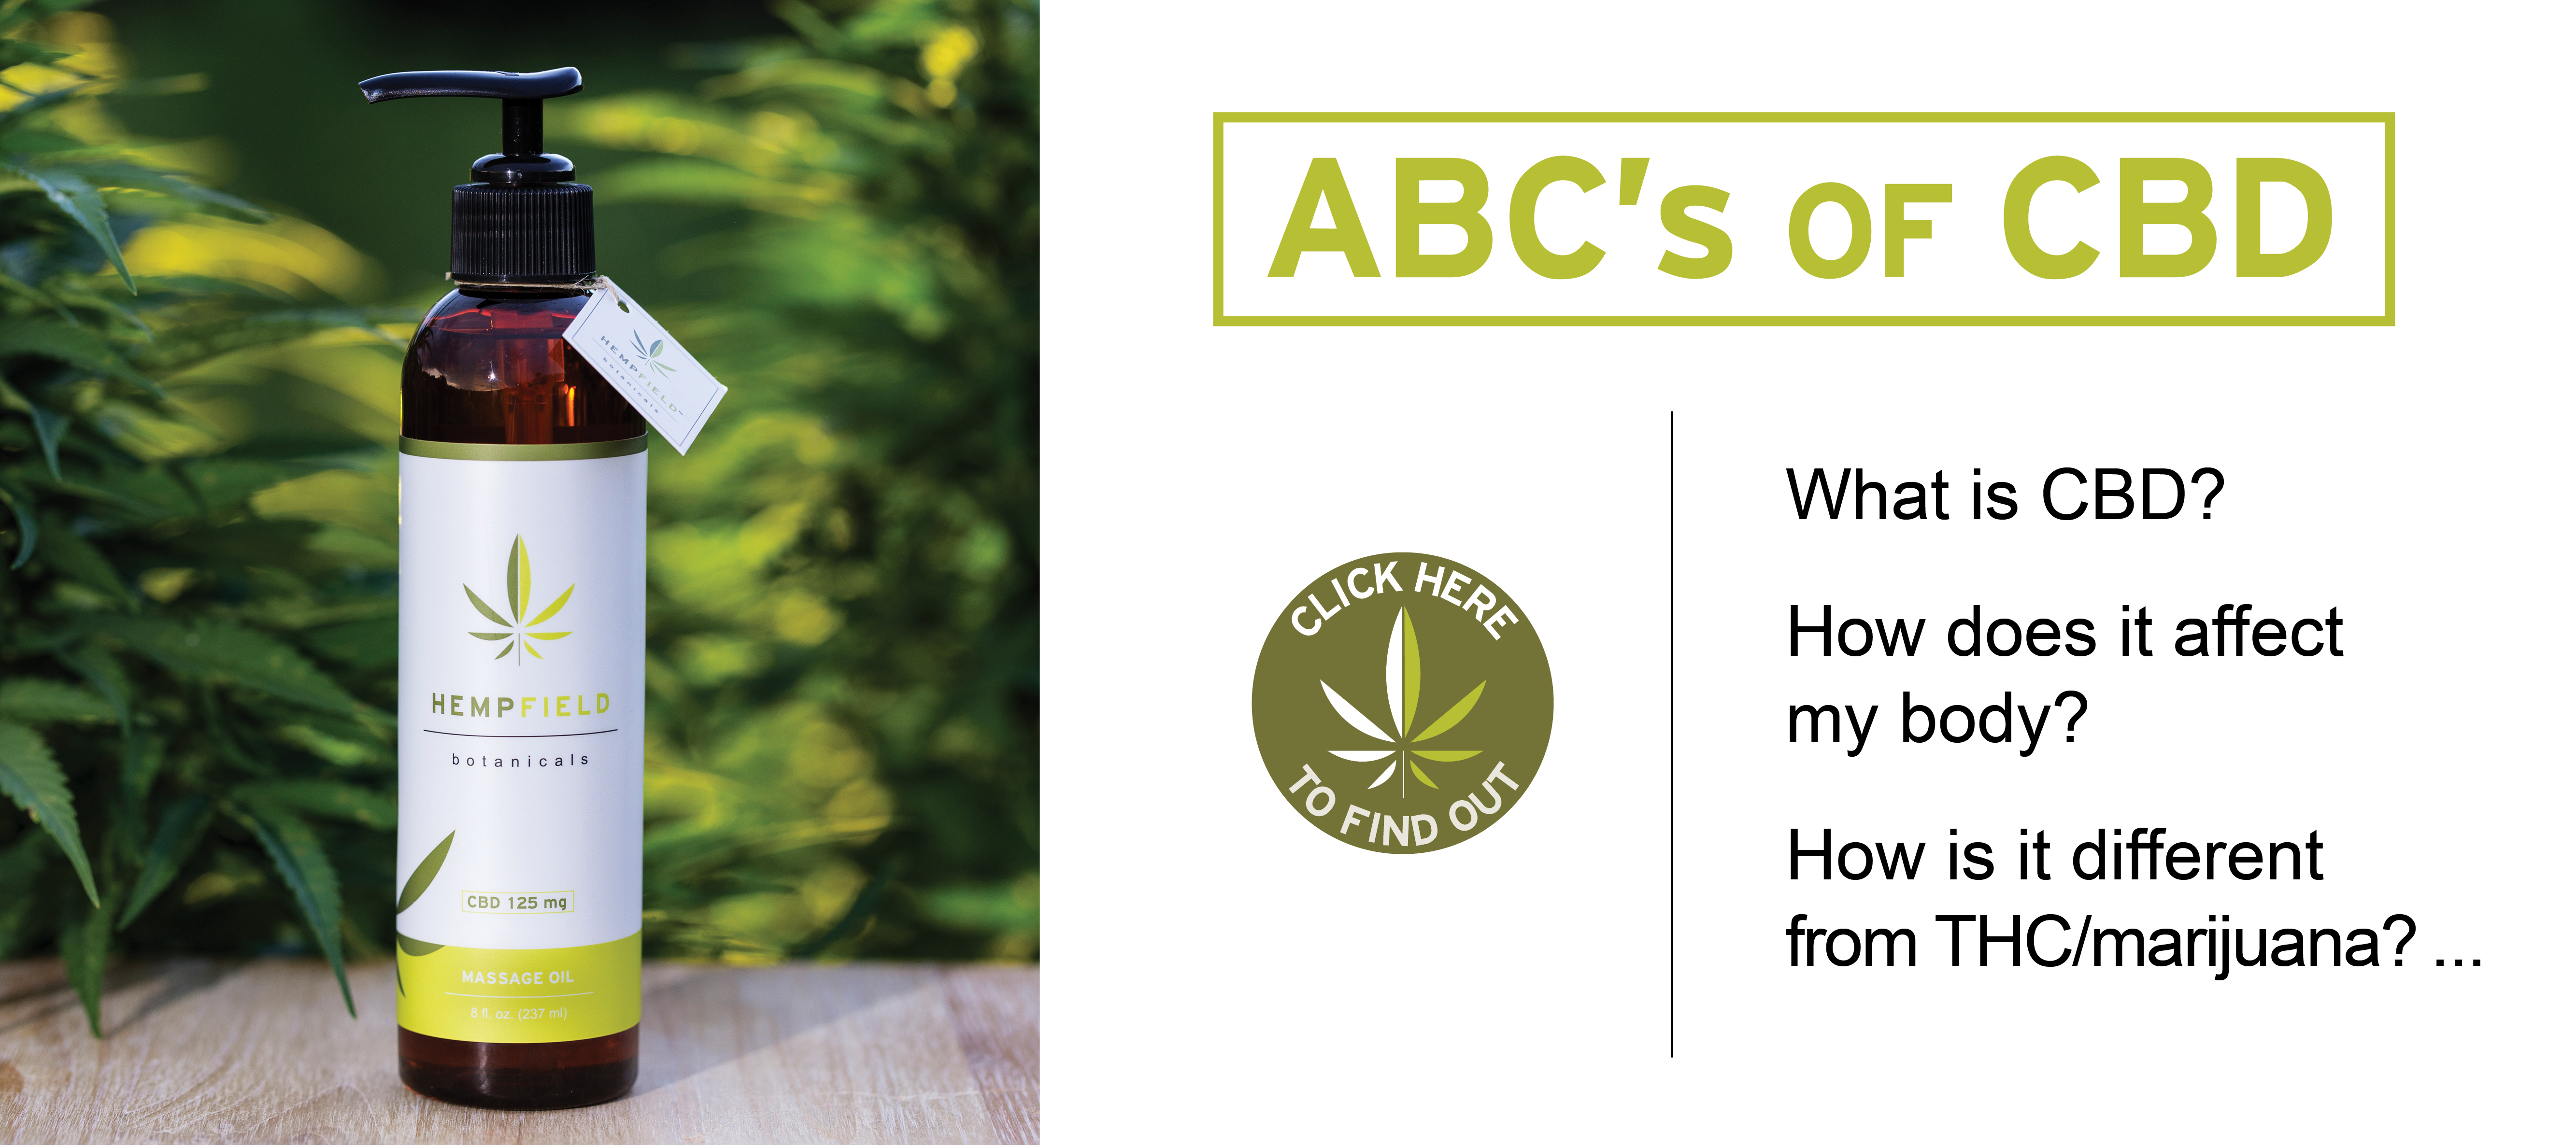 ABC's of CBD